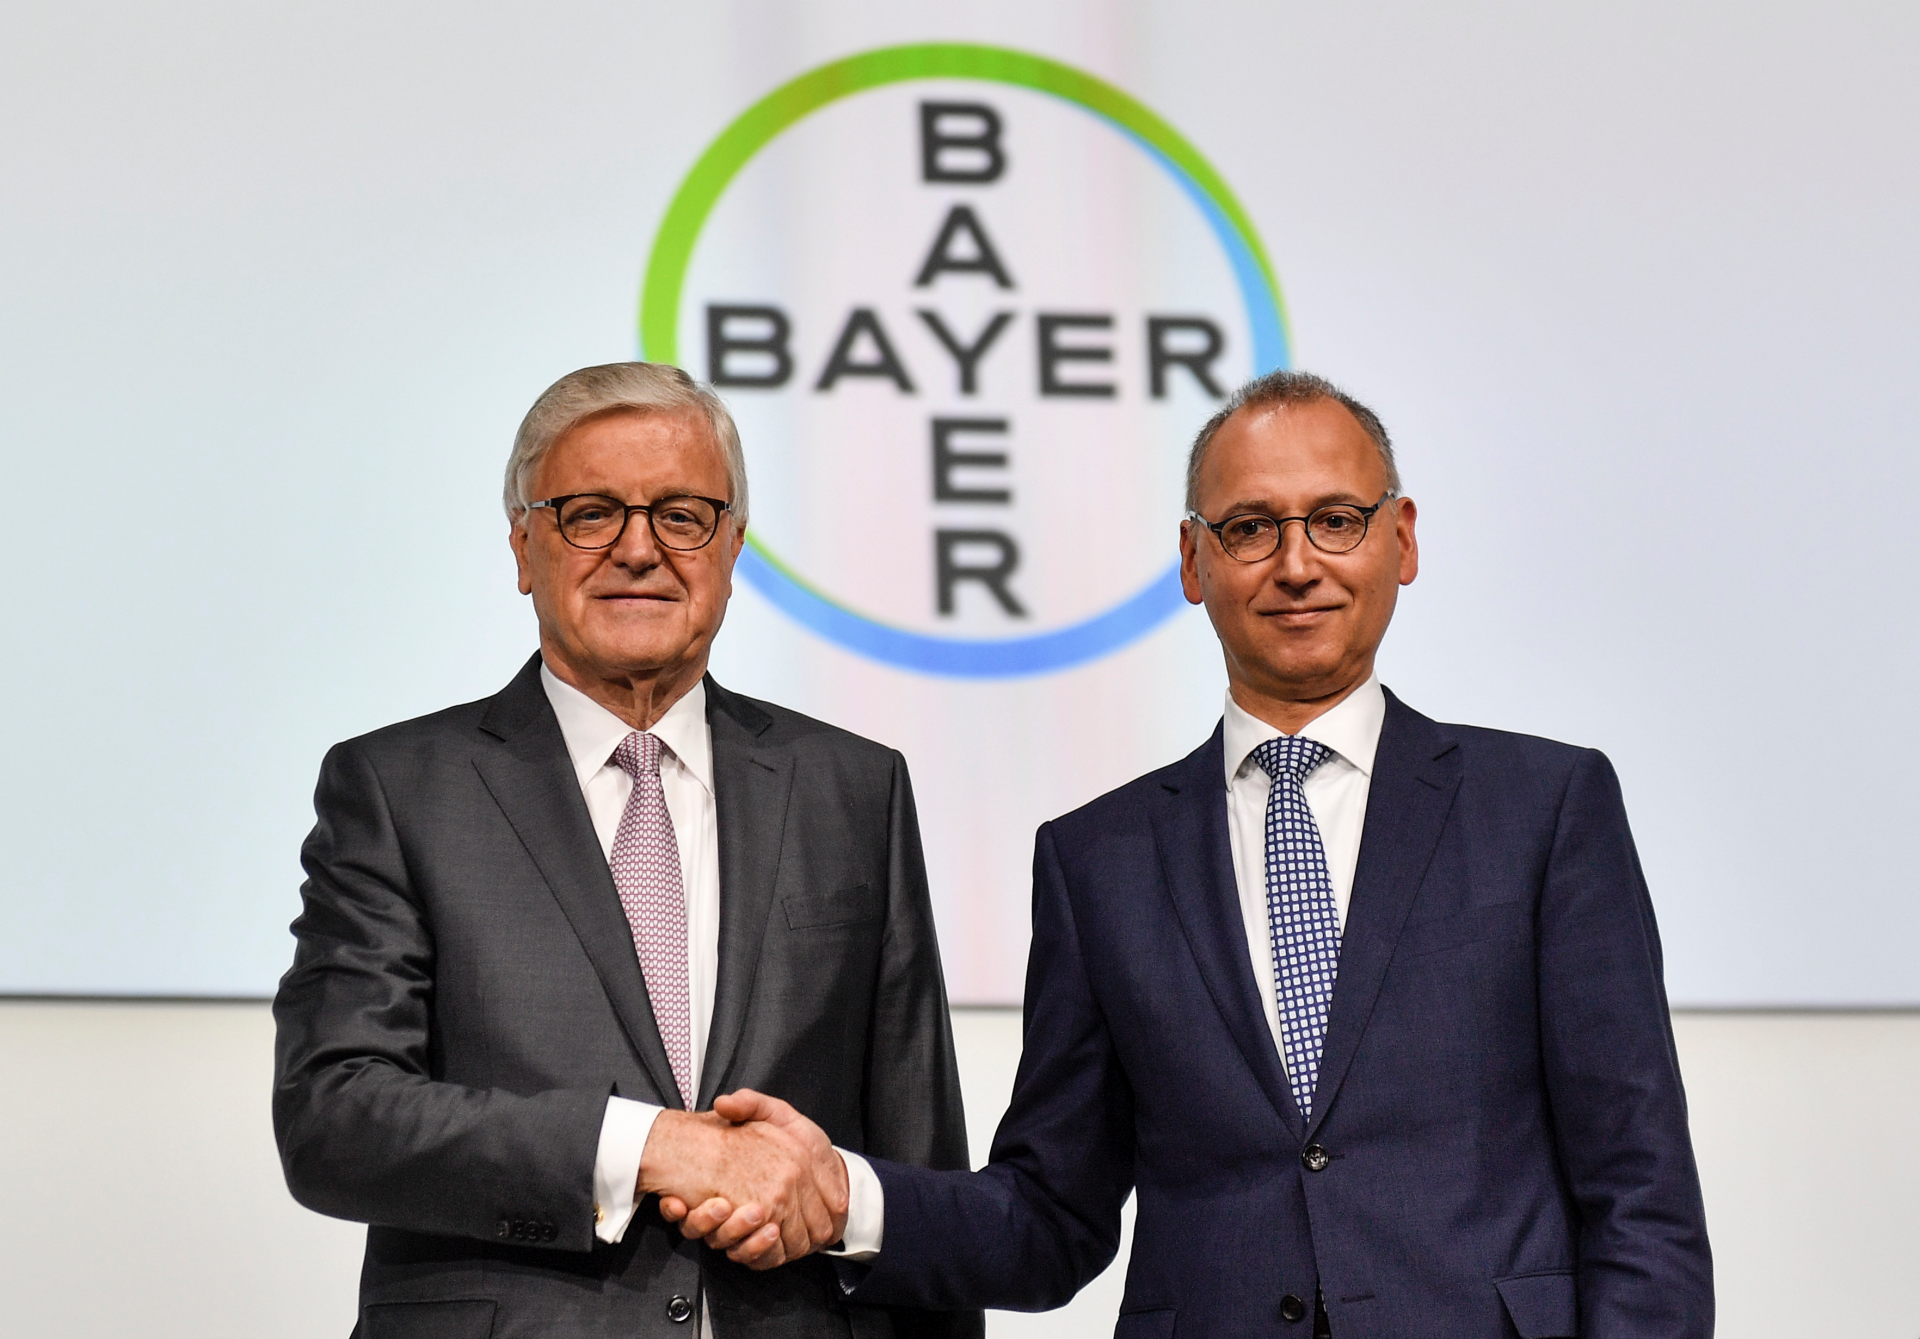 Bayer managers face shareholders amid Monsanto fallout